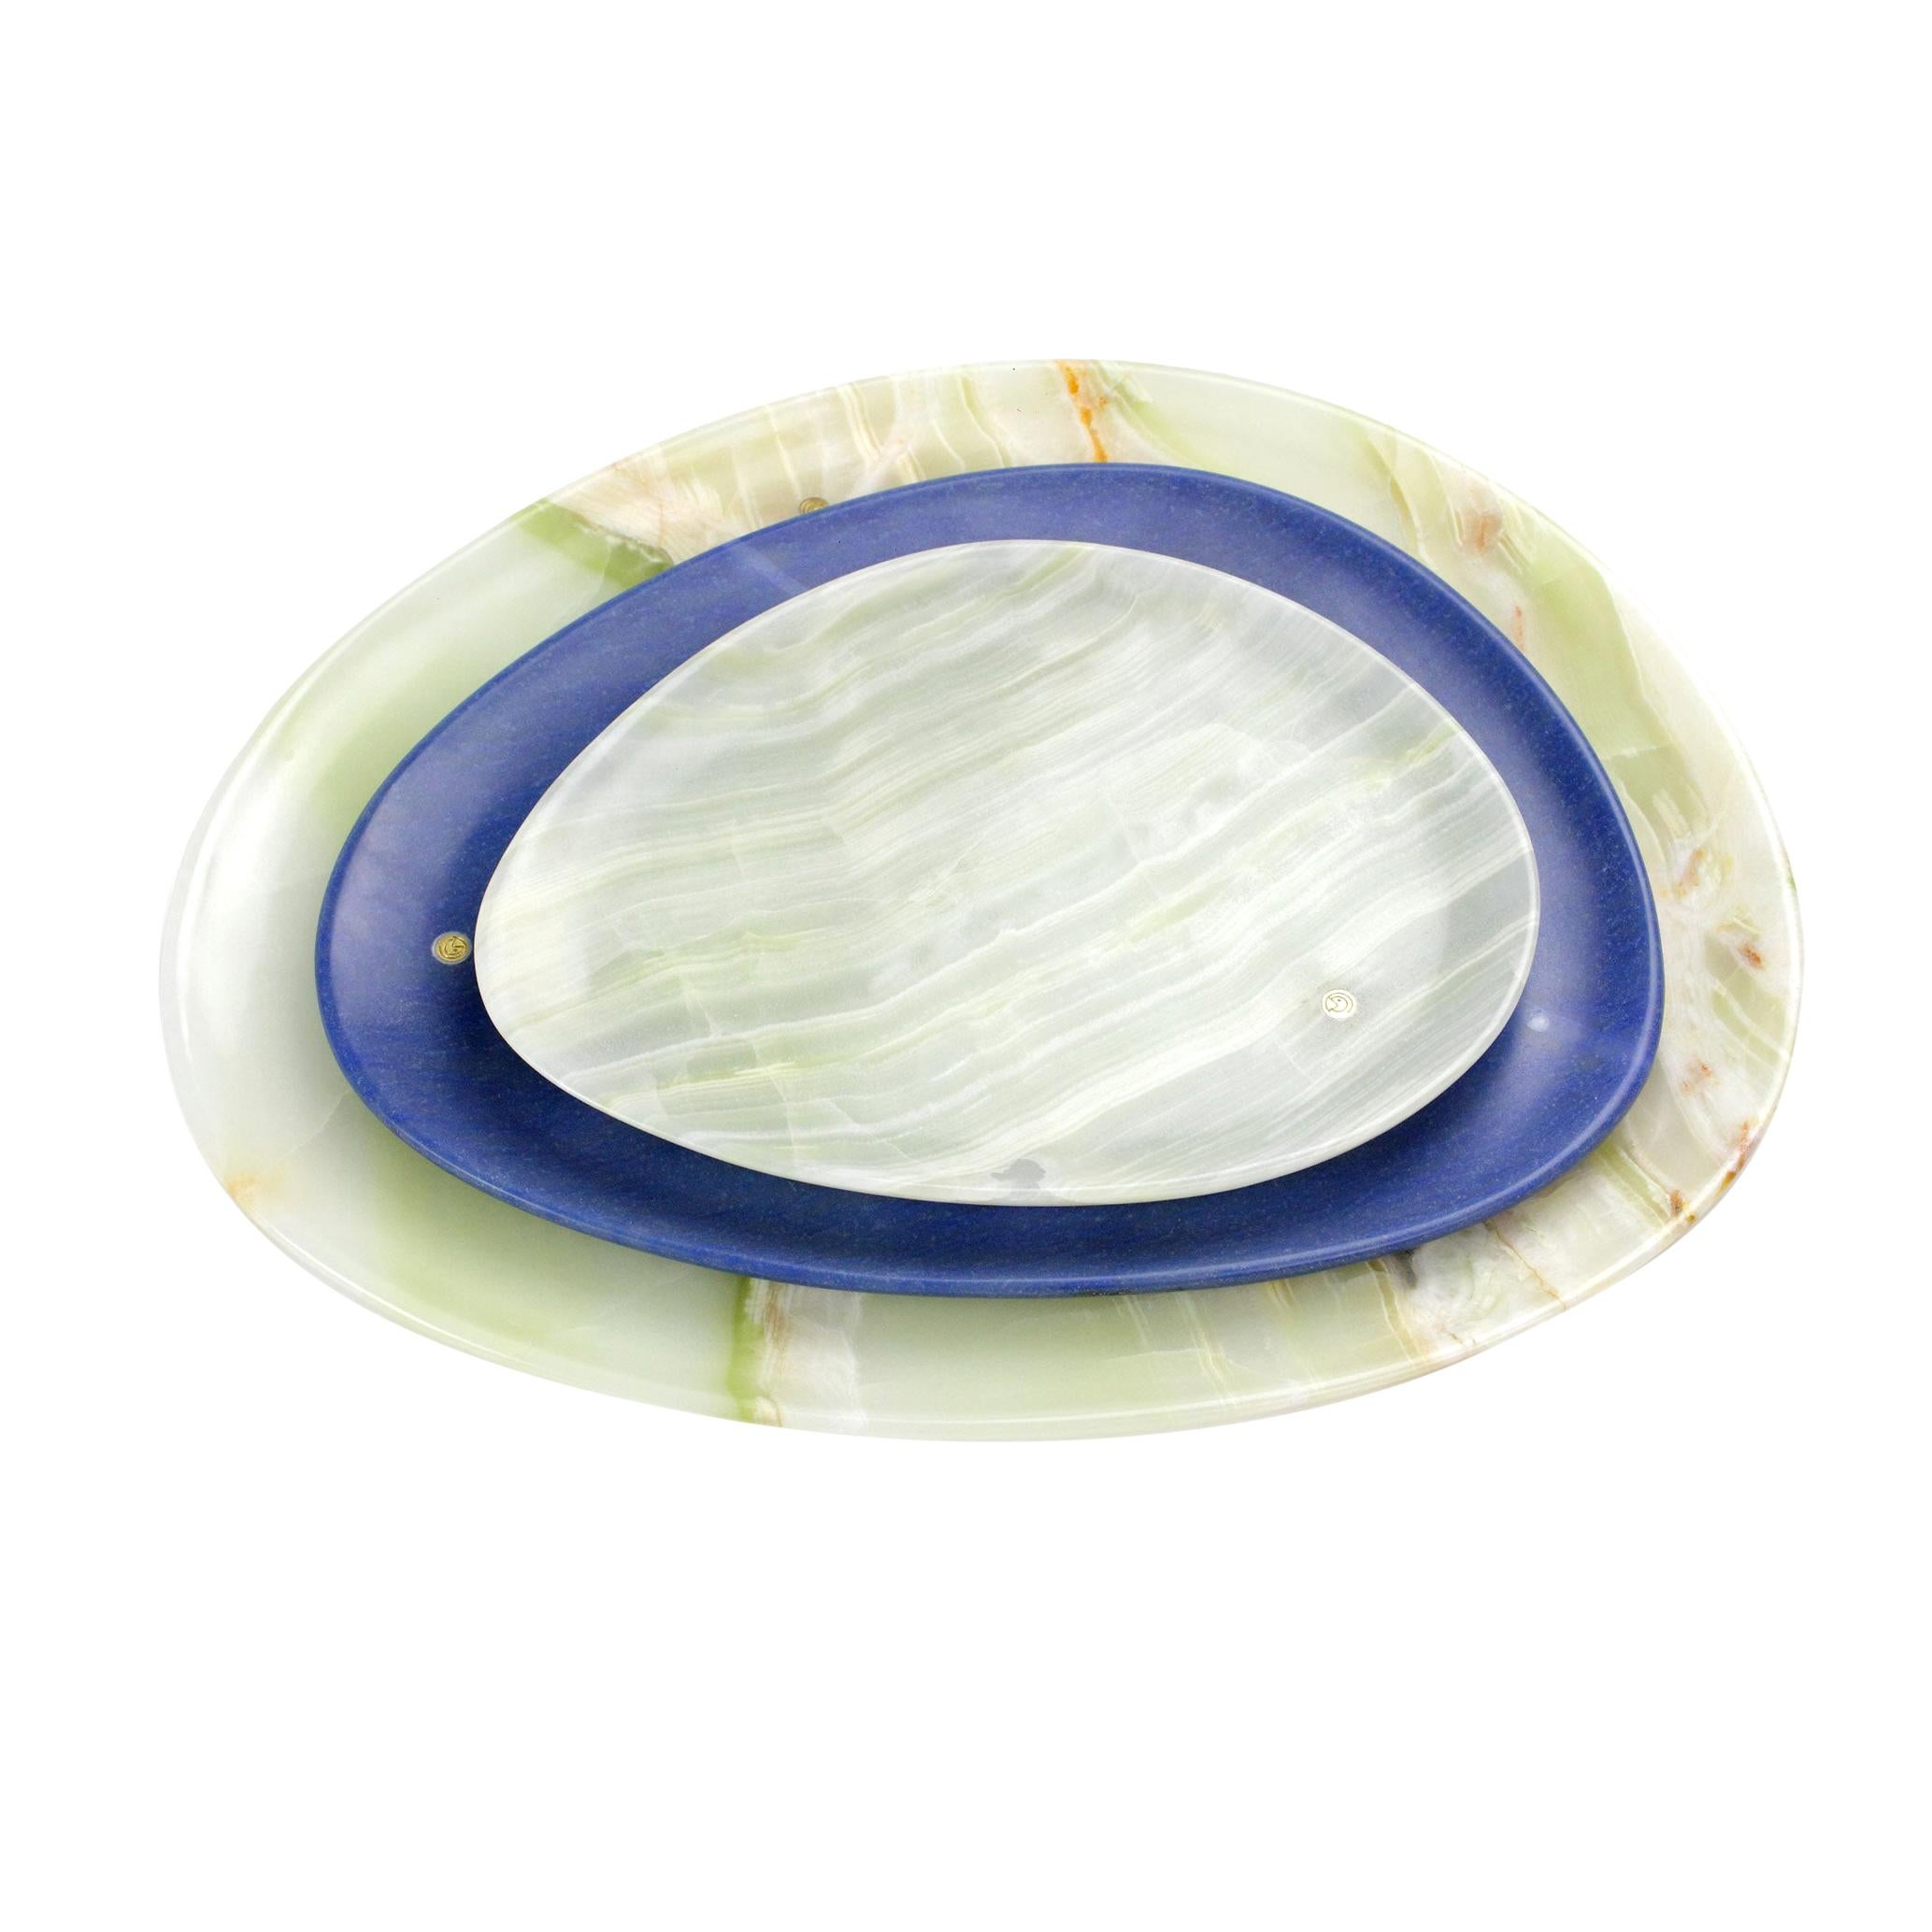 Set of Plates Handmade in Green Onyx and Blue Azul Macaubas Pieruga Marble Italy